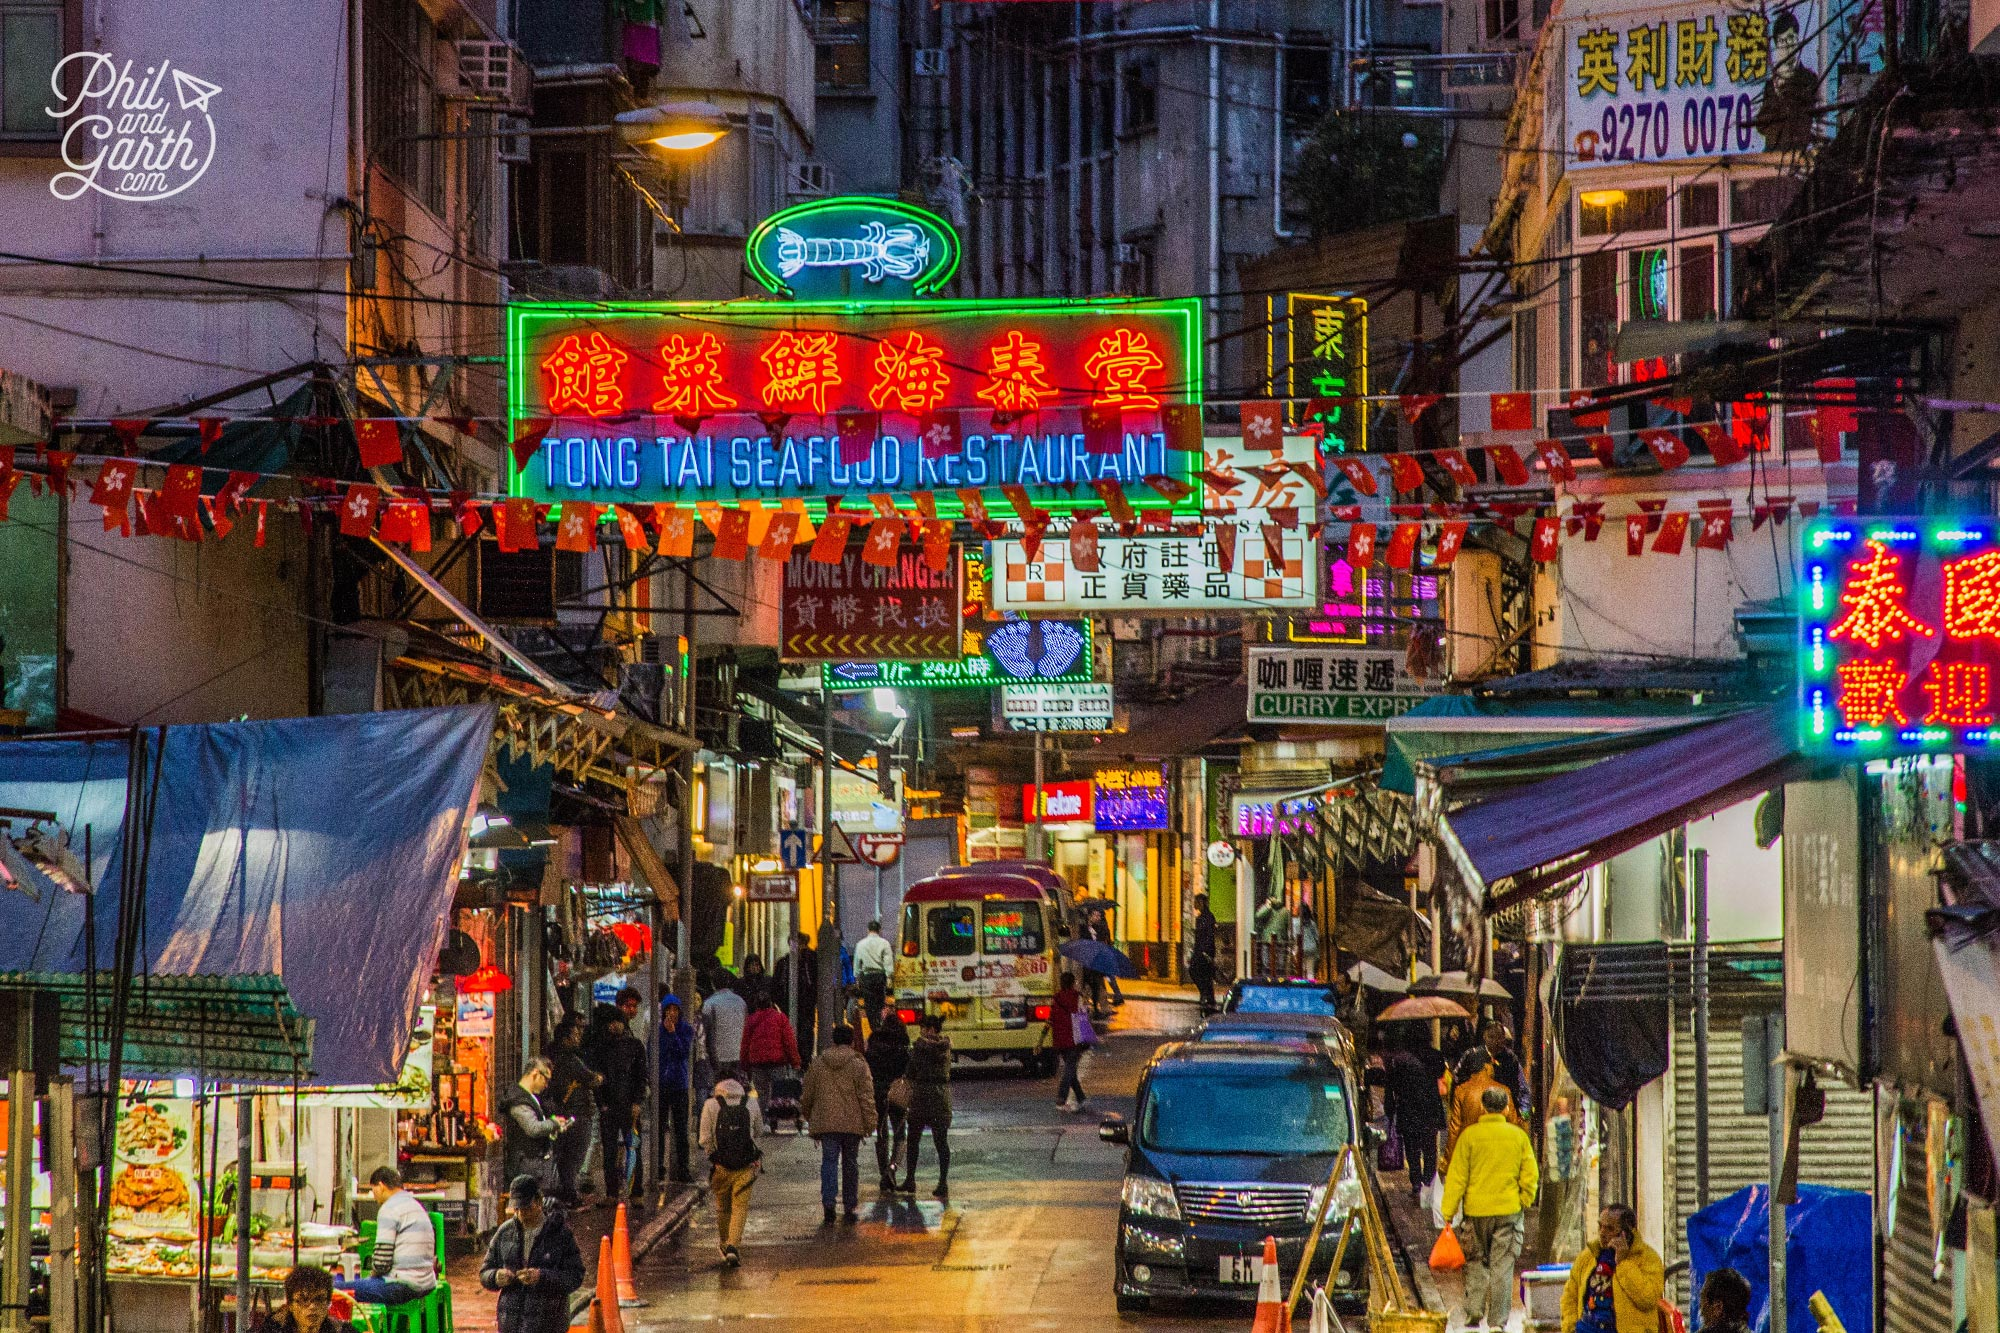 Kowloon's streets are so atmospheric at night